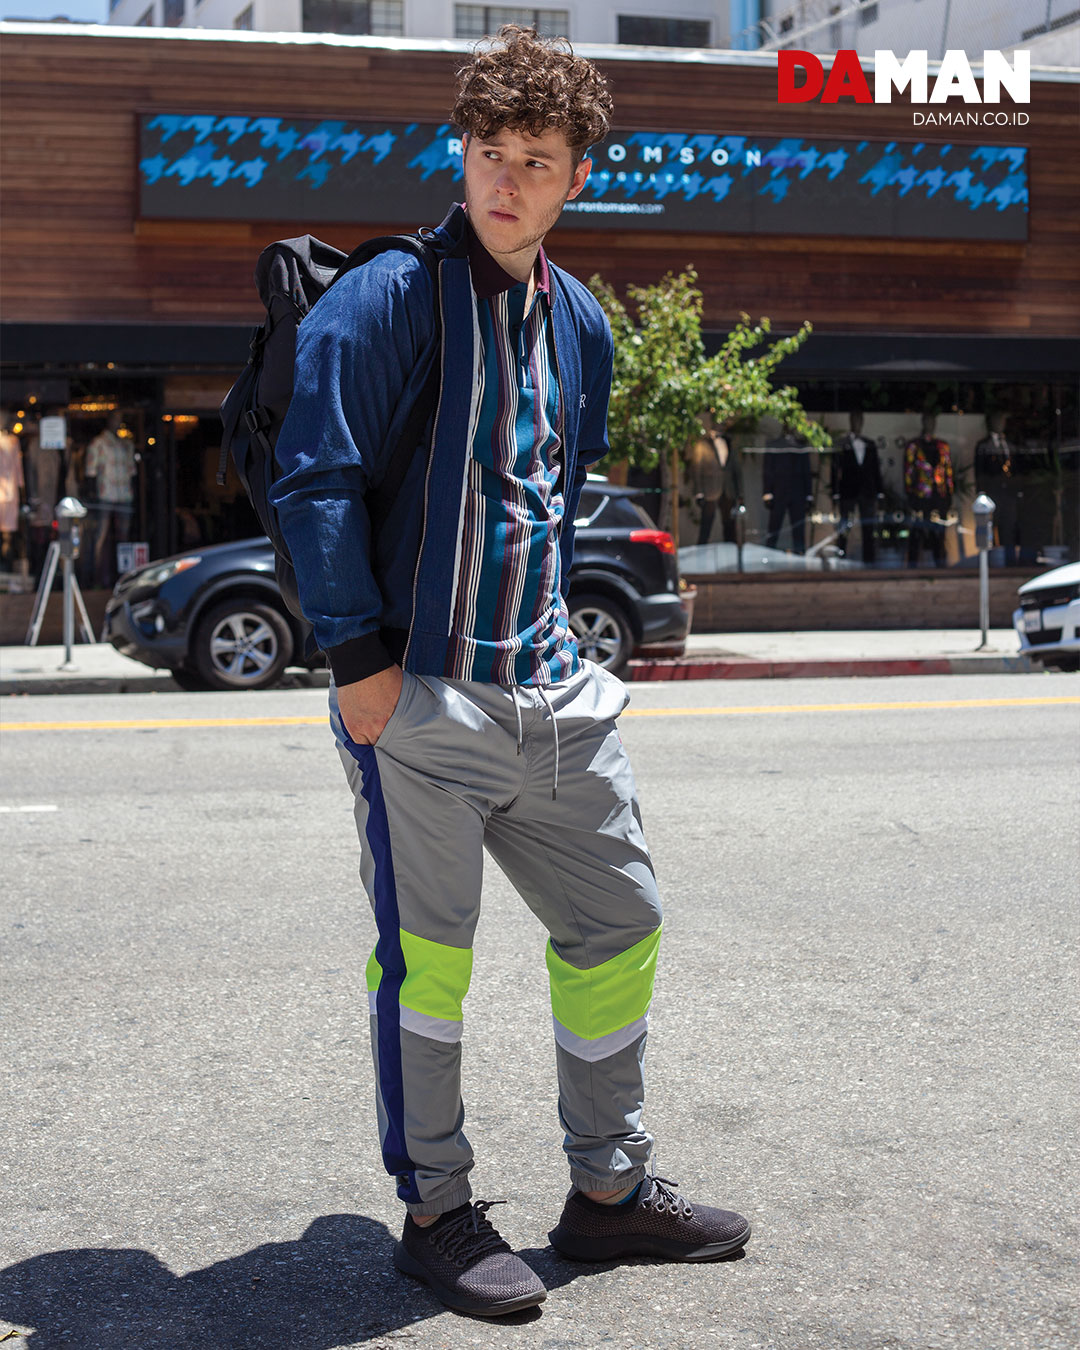 Jacket by Charles & Ron; shirt by 4 Funky Flavours; pants by Guess; backpack by Atomic Mission Gear; shoes by All Birds